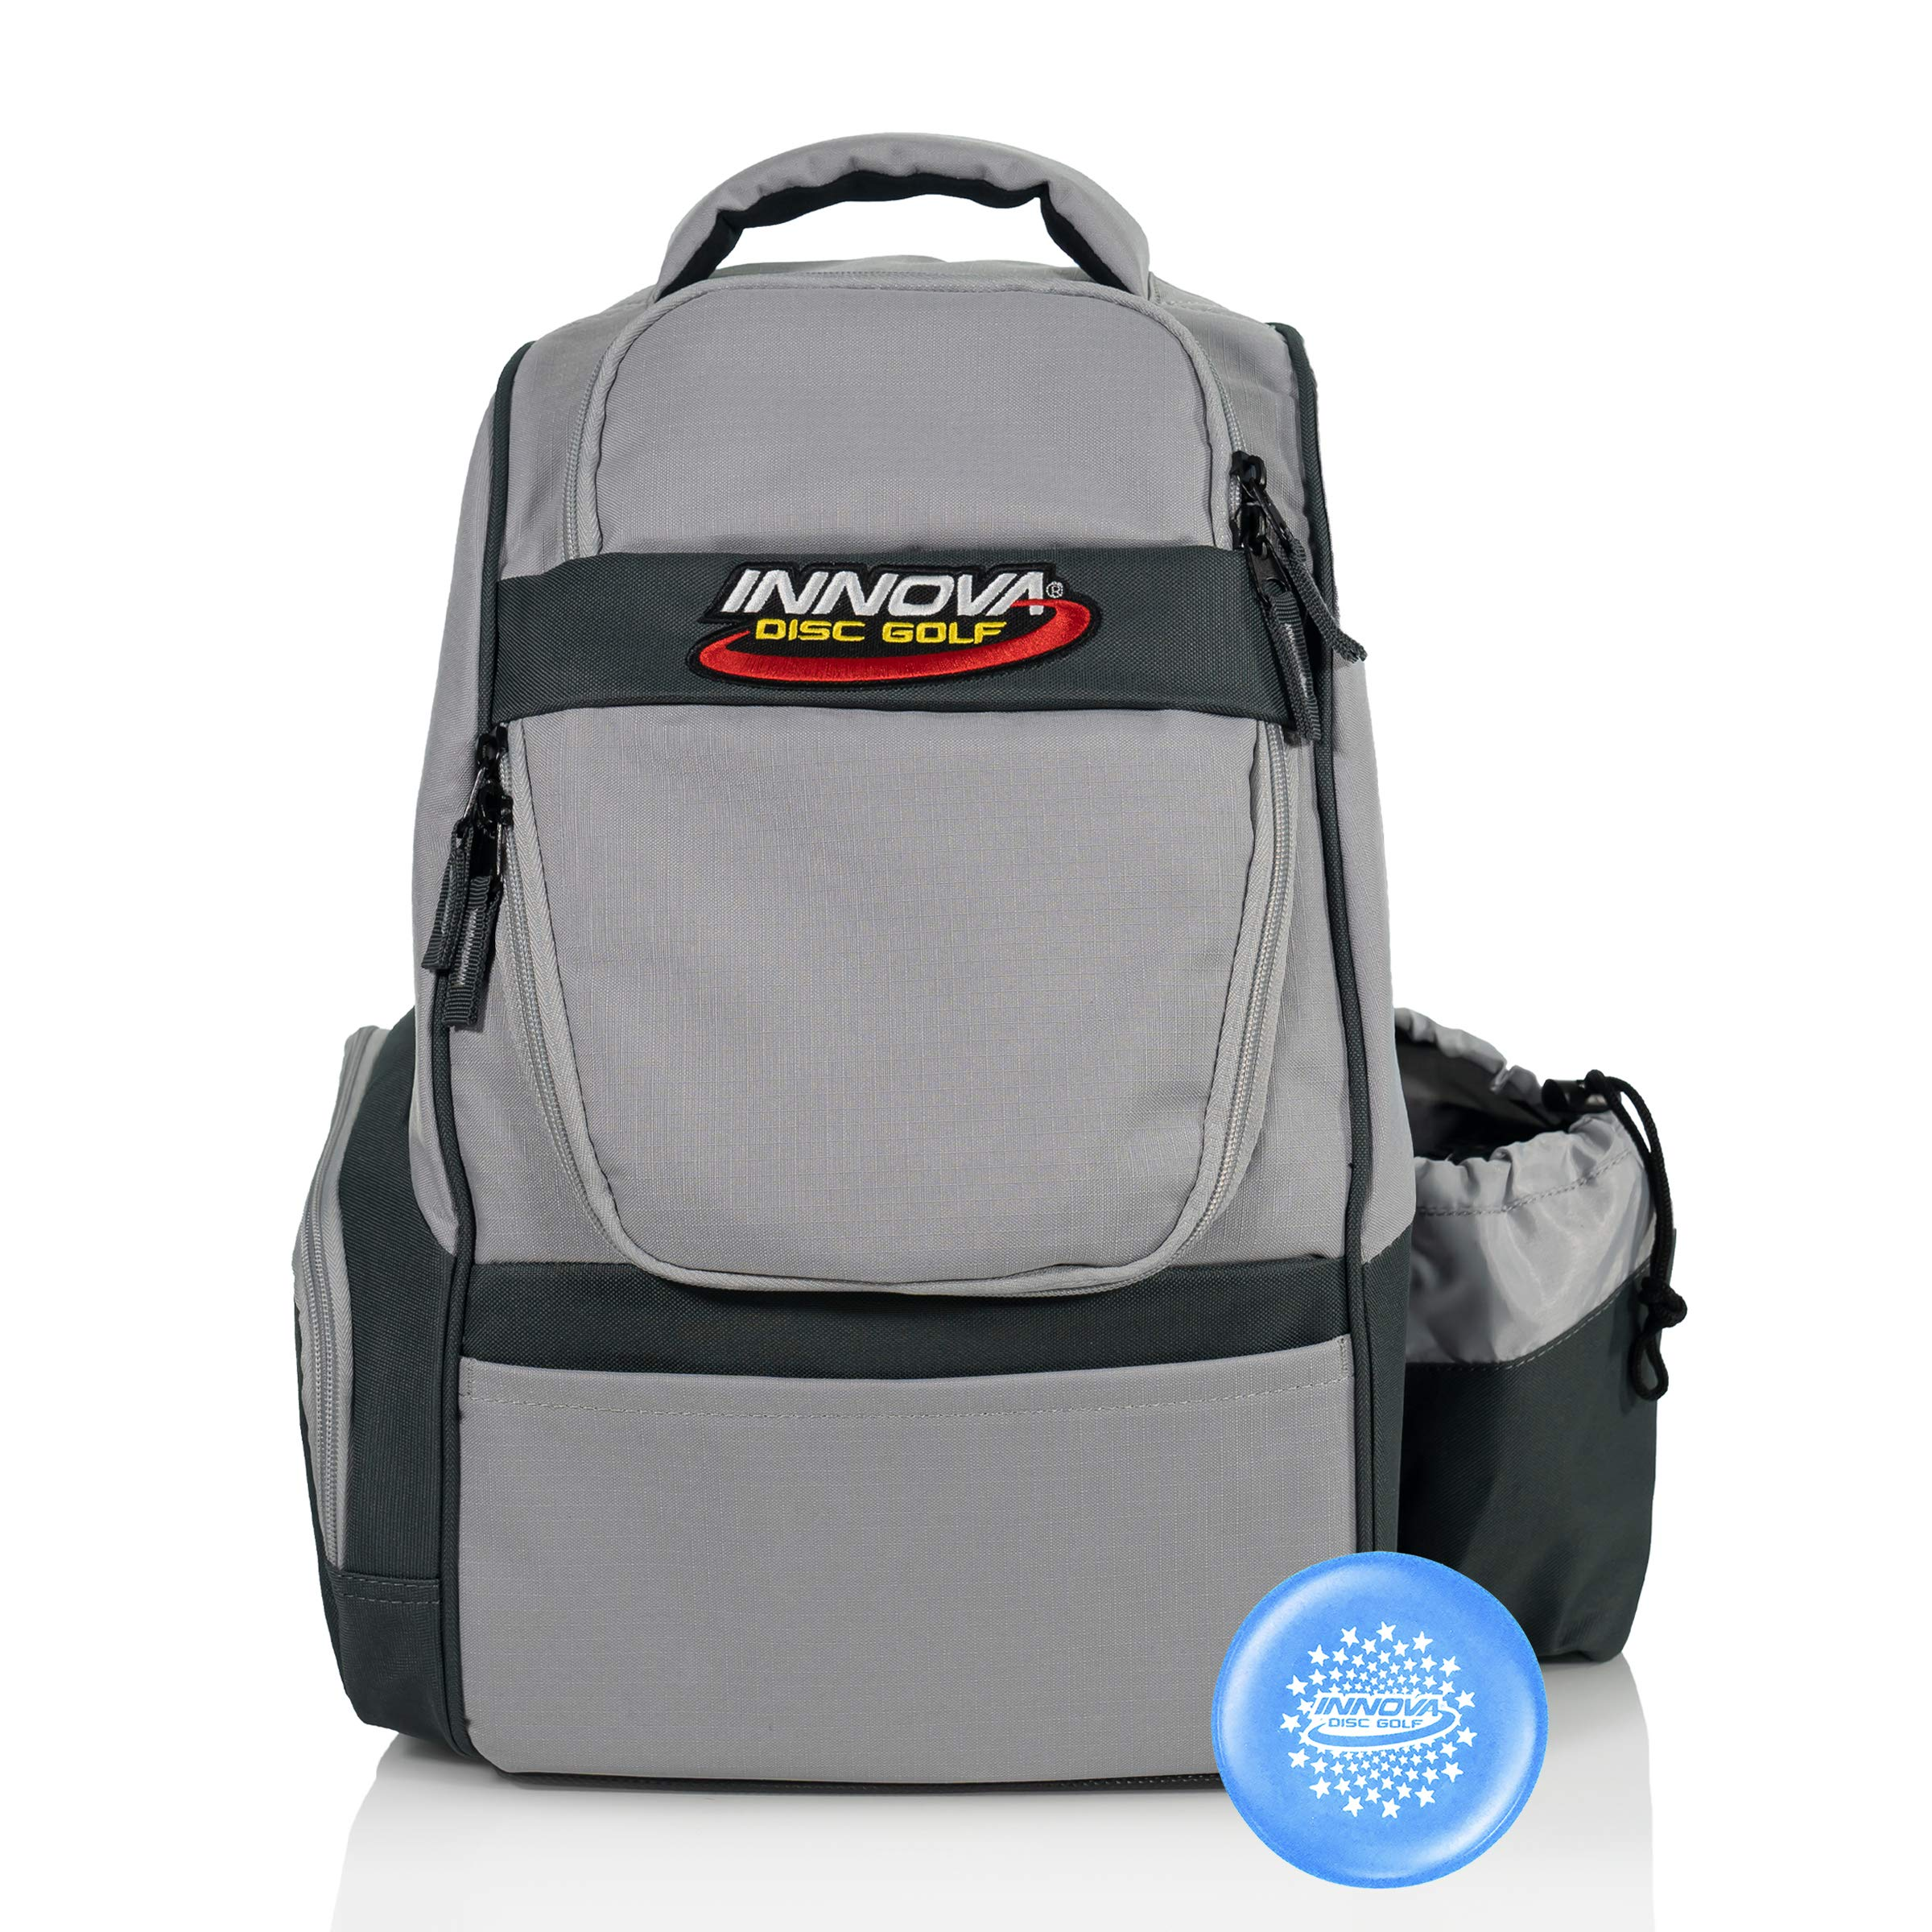 Innova Adventure Pack Backpack Disc Golf Bag - Holds 25 Discs - Lightweight - Includes Innova Limited Edition Stars Mini Marker (Silver/Grey) by Innova Disc